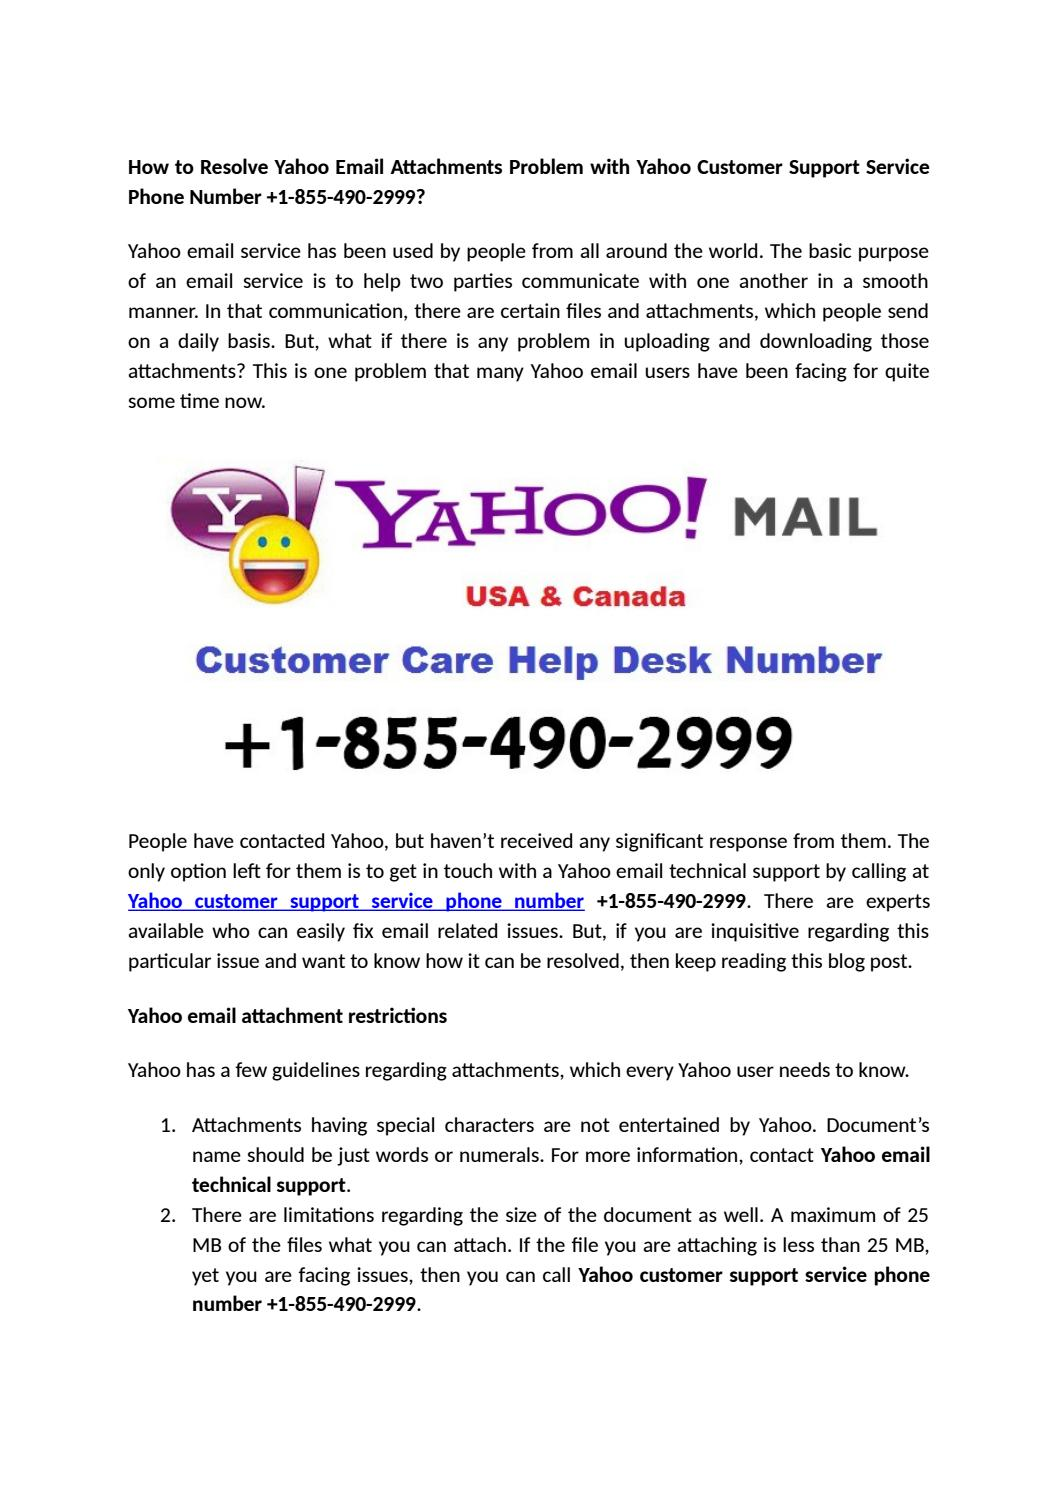 how to open attachments in yahoo mail